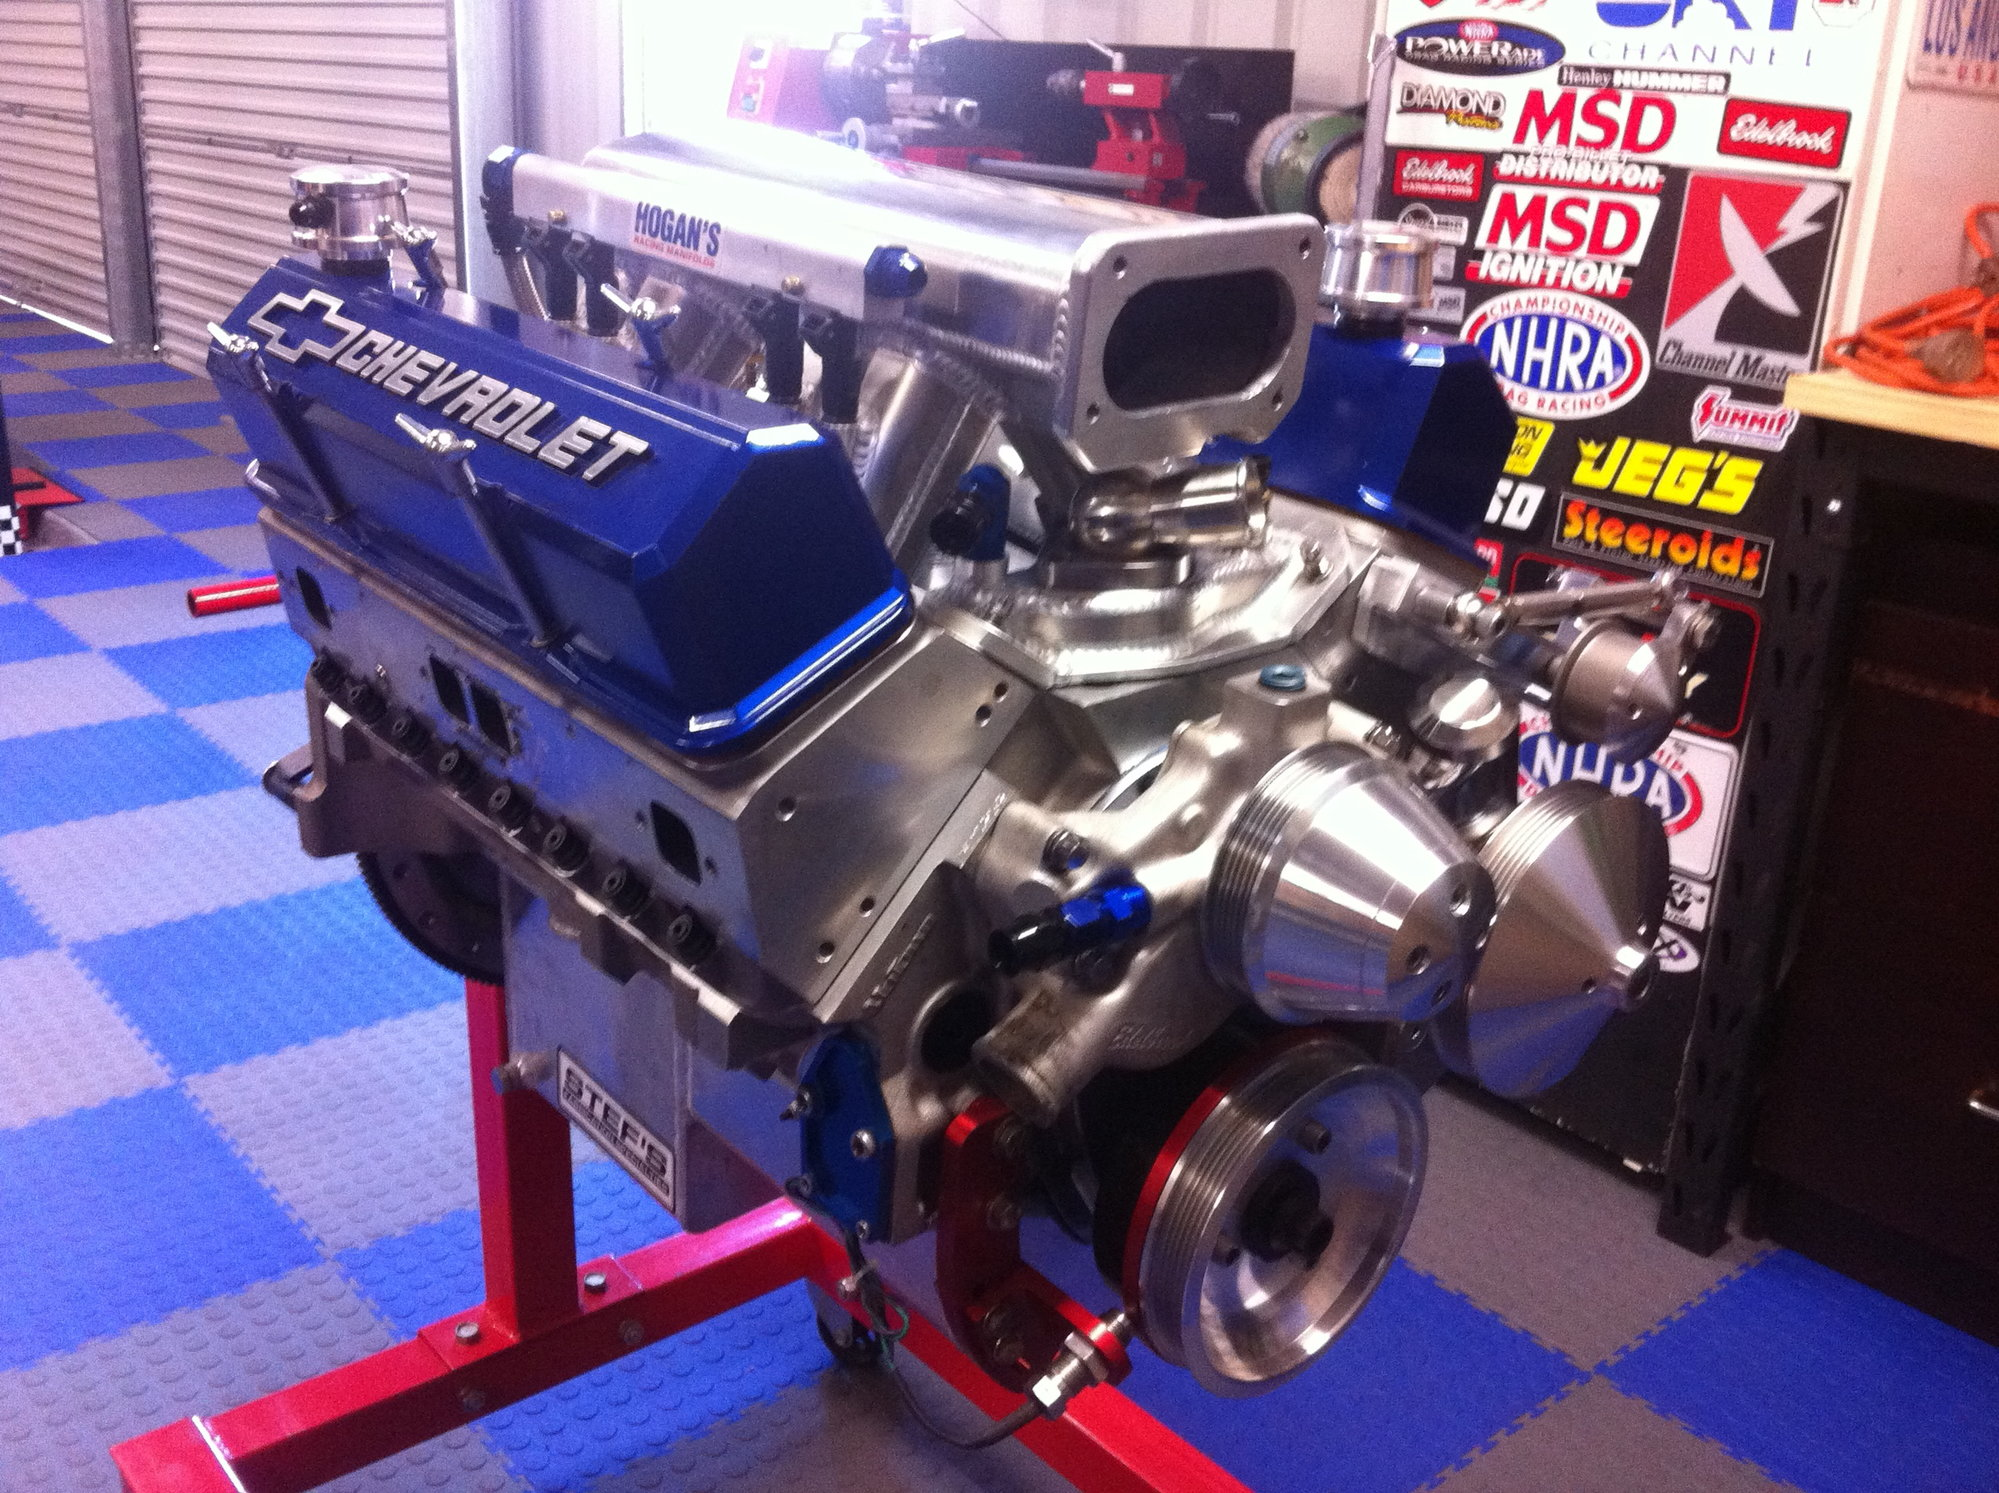 Tuned Port style EFI w/ conventional sbc heads